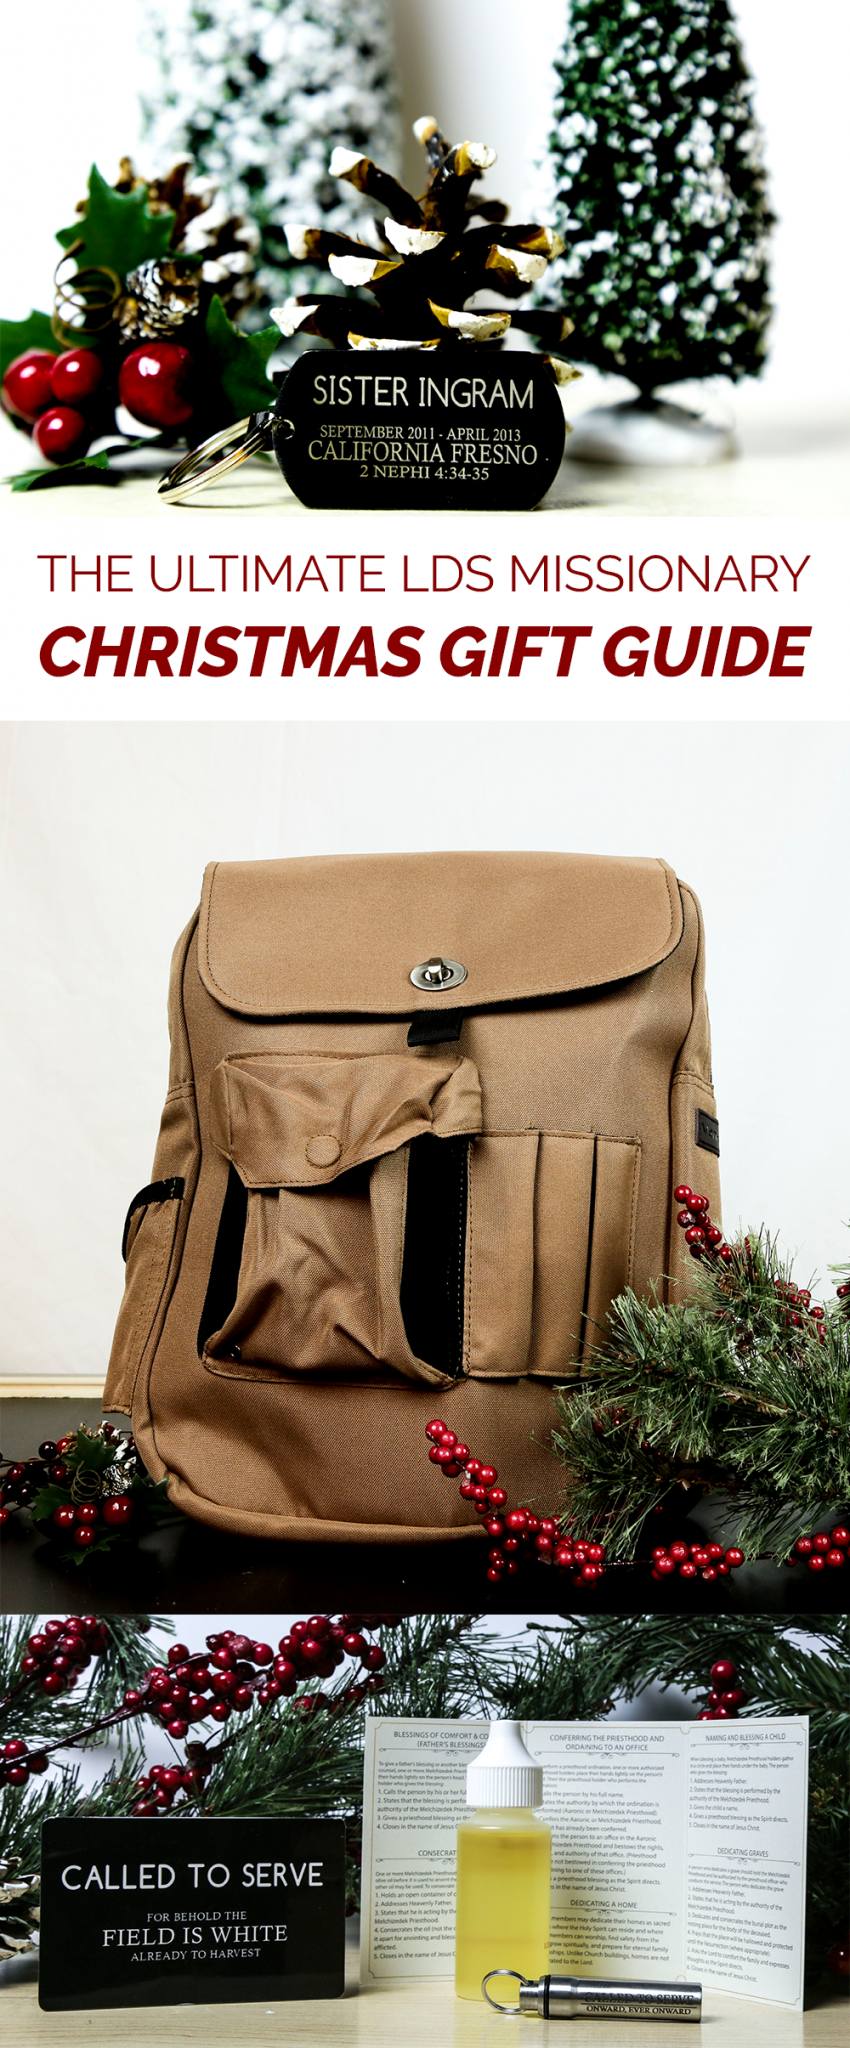 lds-missionary-christmas-gift-guide